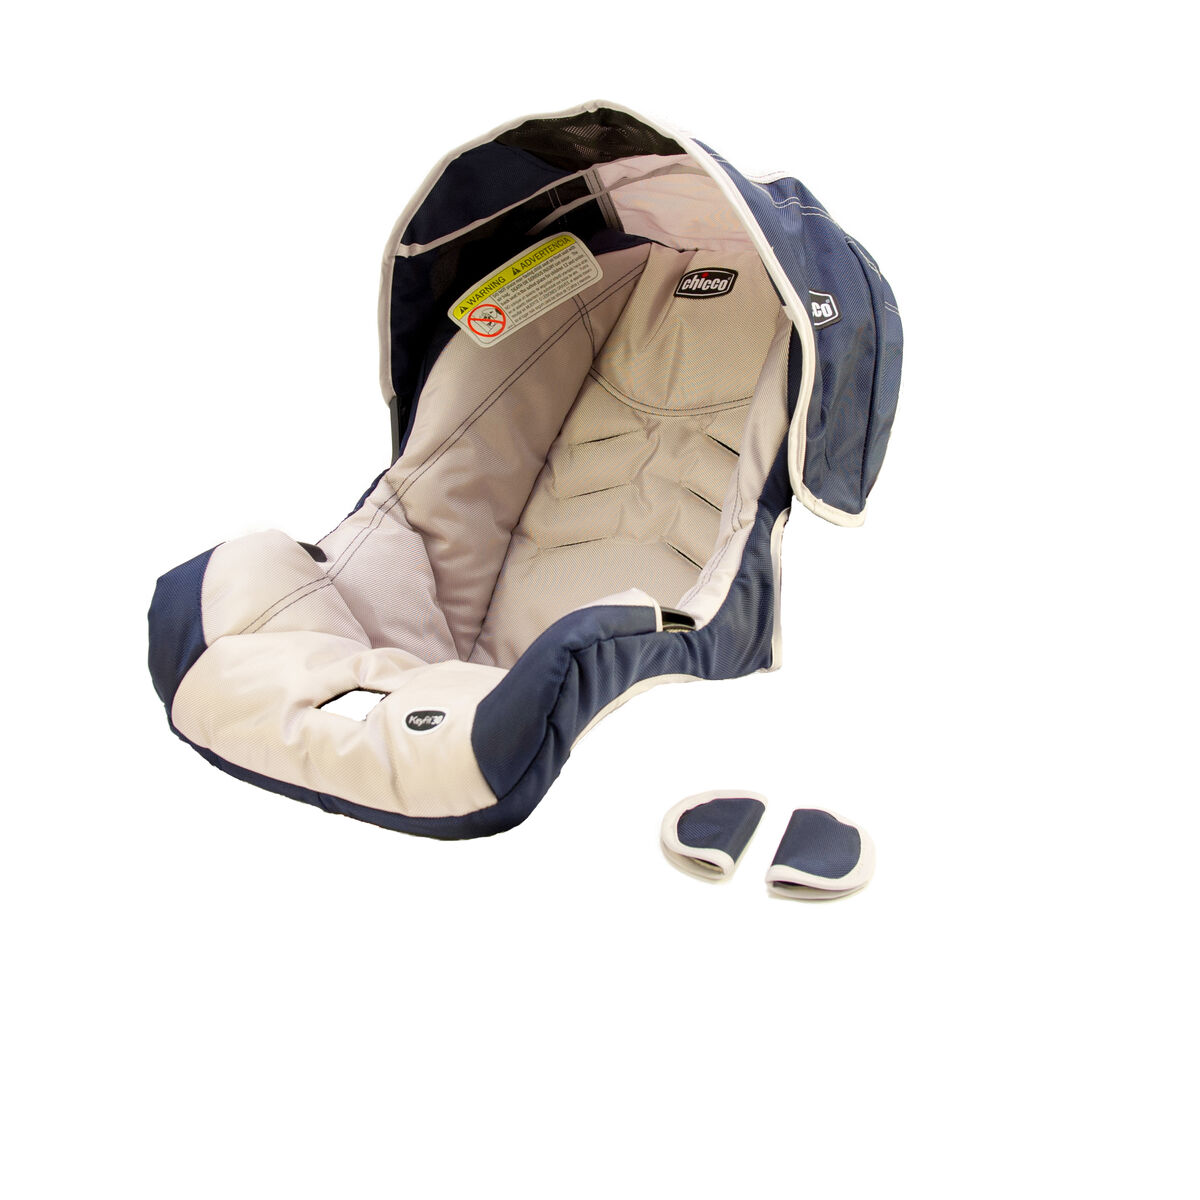 Can You Buy Replacement Car Seat Covers Graco